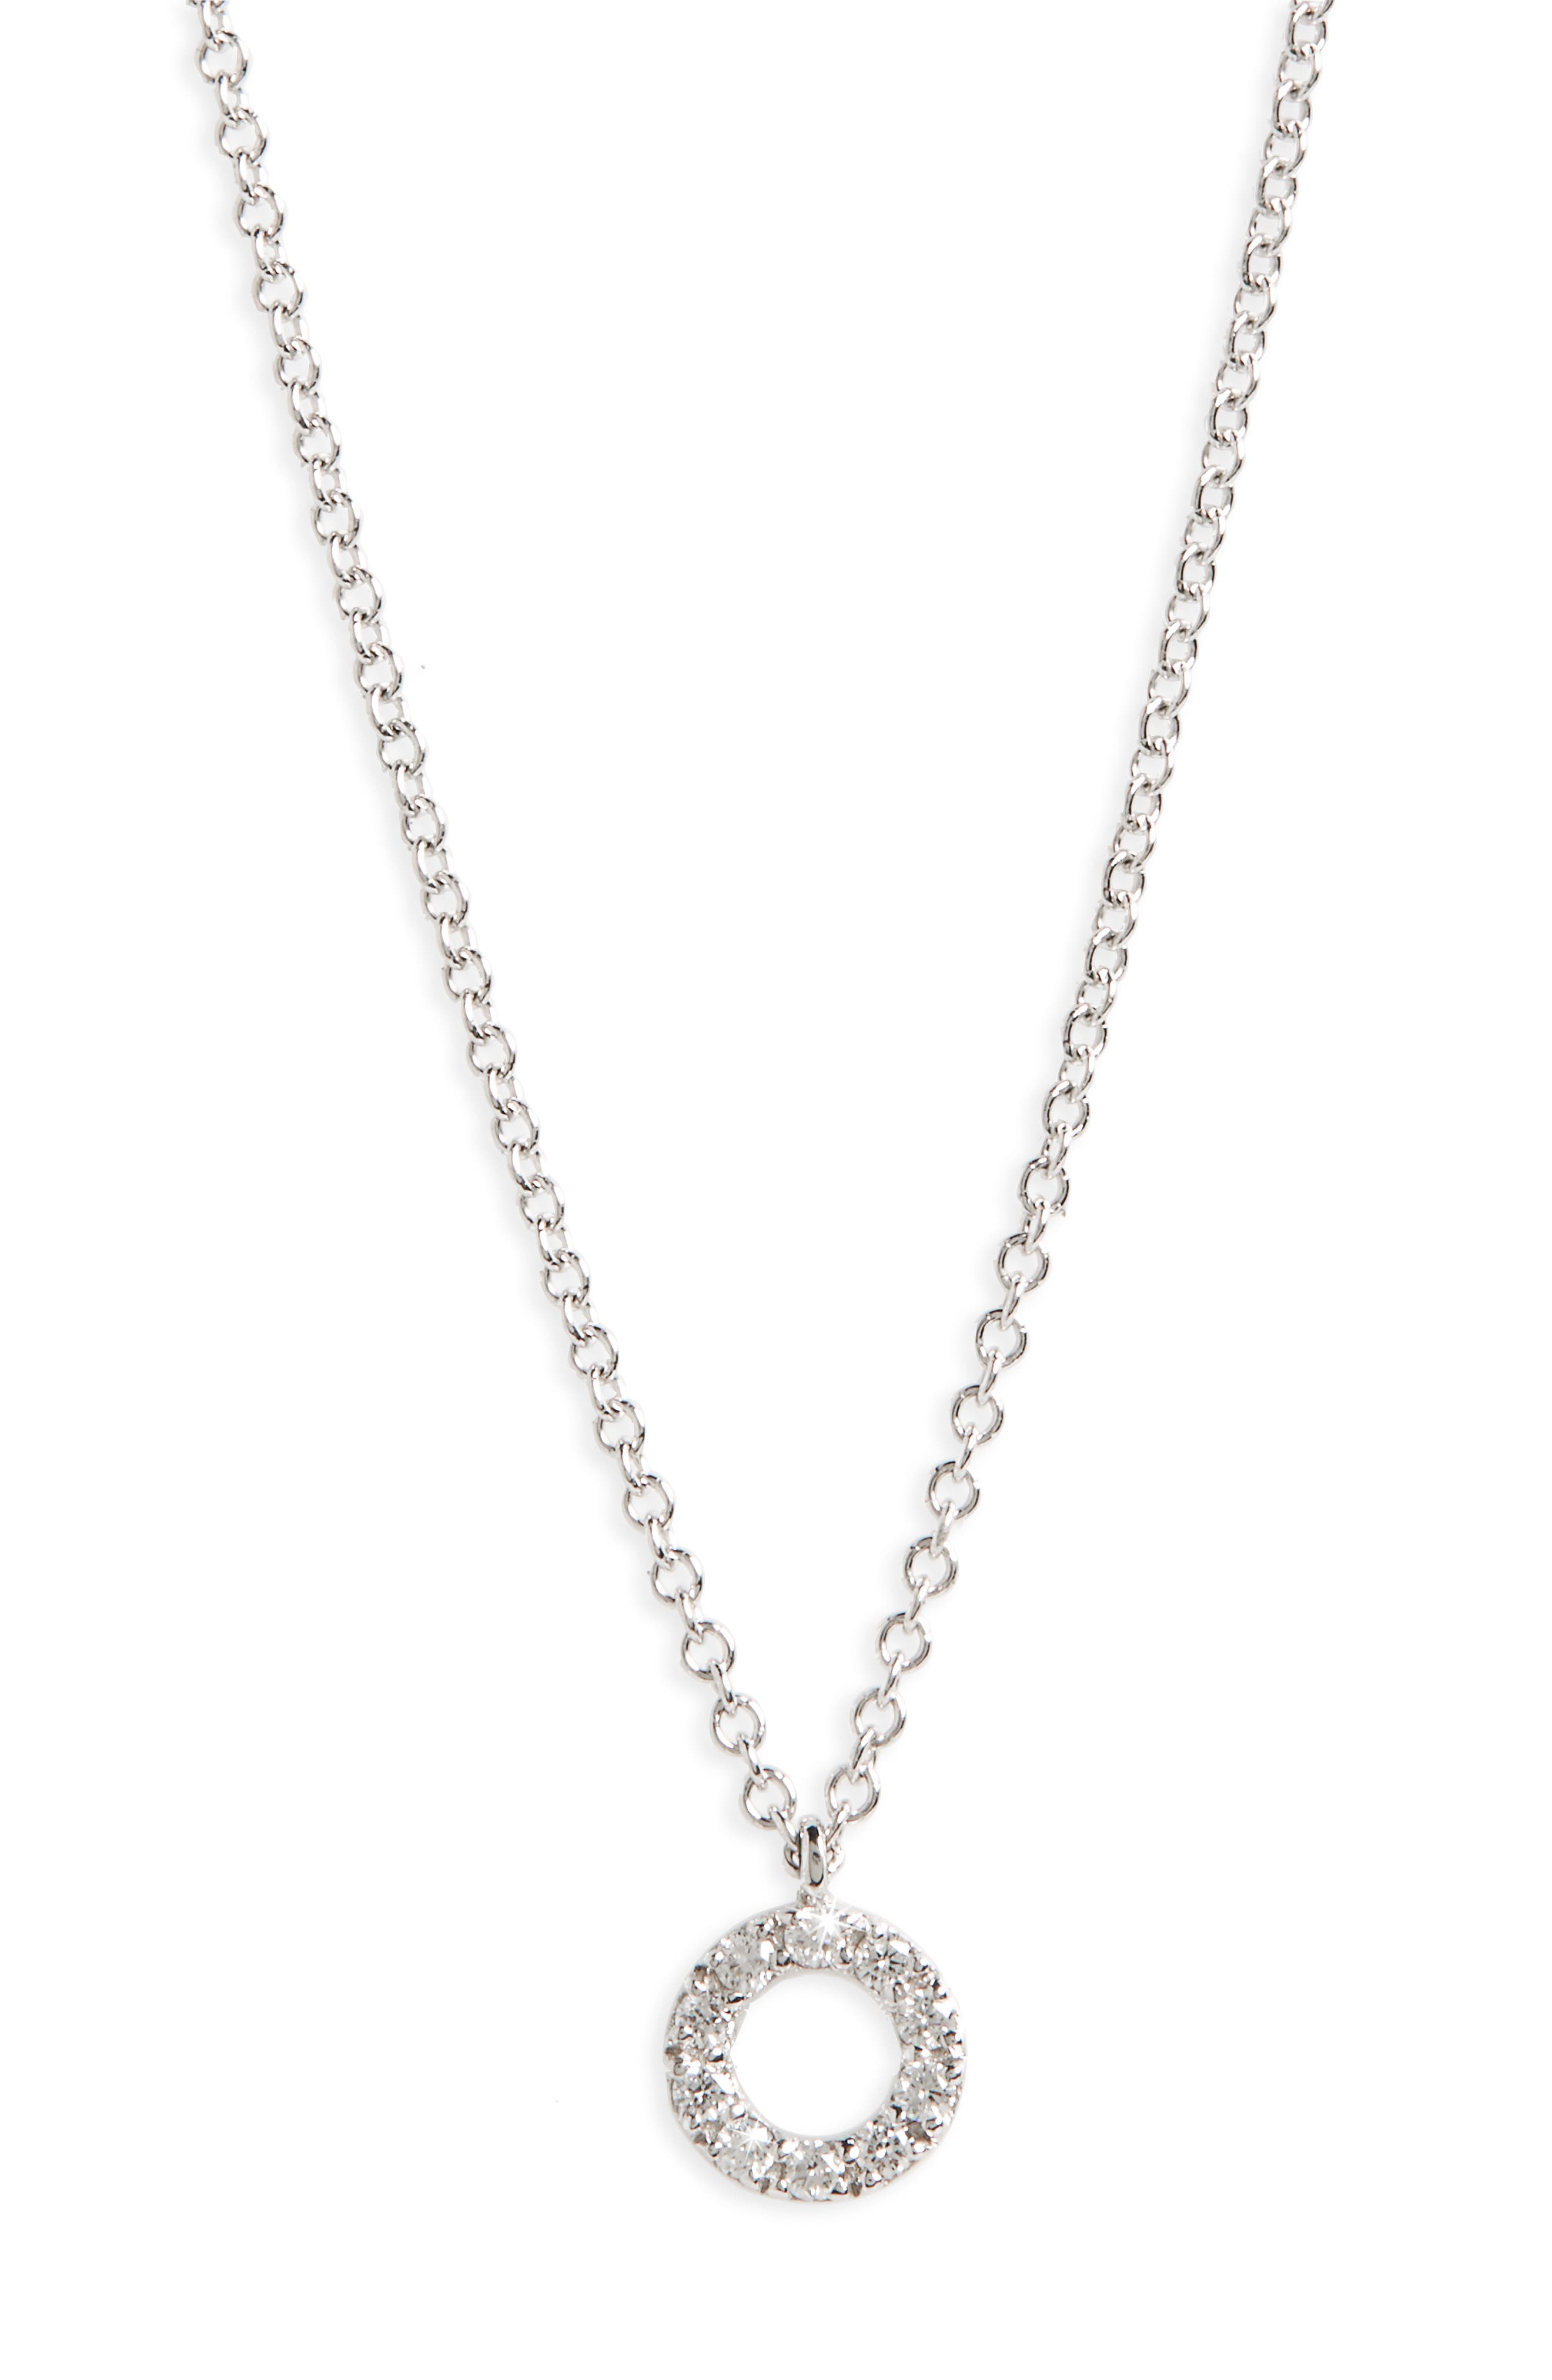 Simple Obsessions Diamond Pendant Necklace,                         Main,                         color, WHITE GOLD